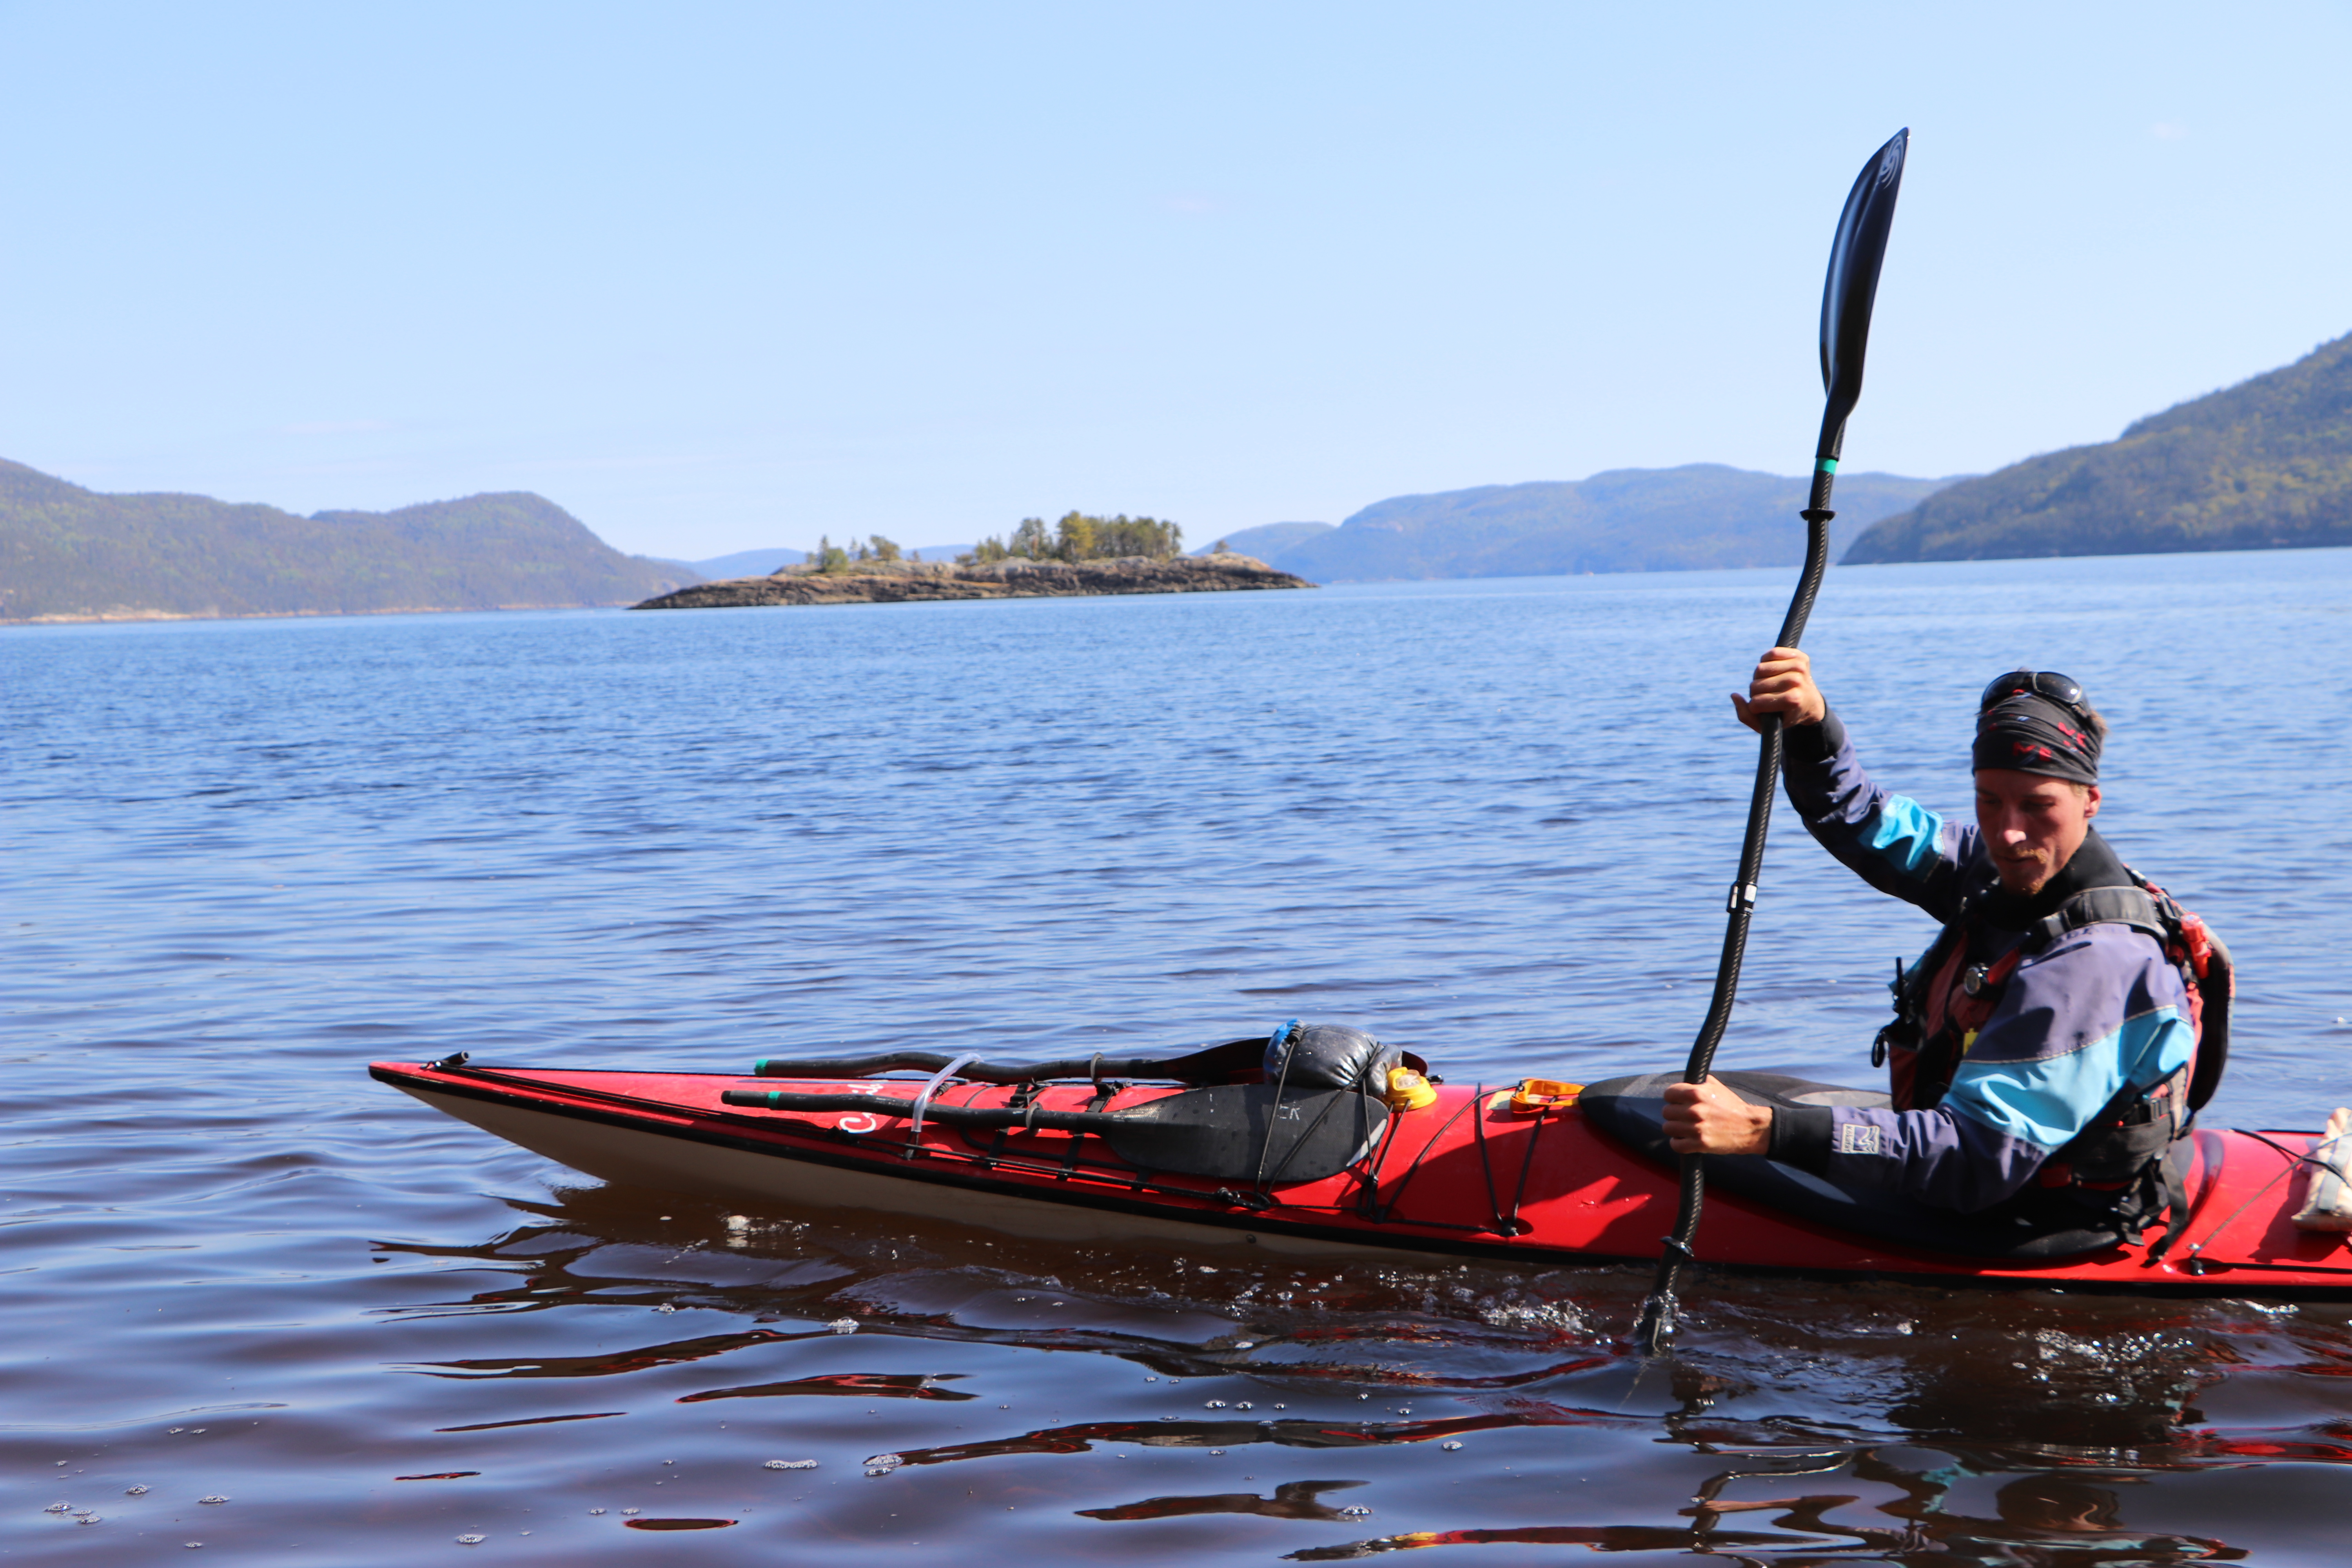 Mathieu Boulanger-Tessier, a kayak guide on the Saguenay Fjord for seven years, is concerned an increase in heavy marine traffic will drive tourists away.